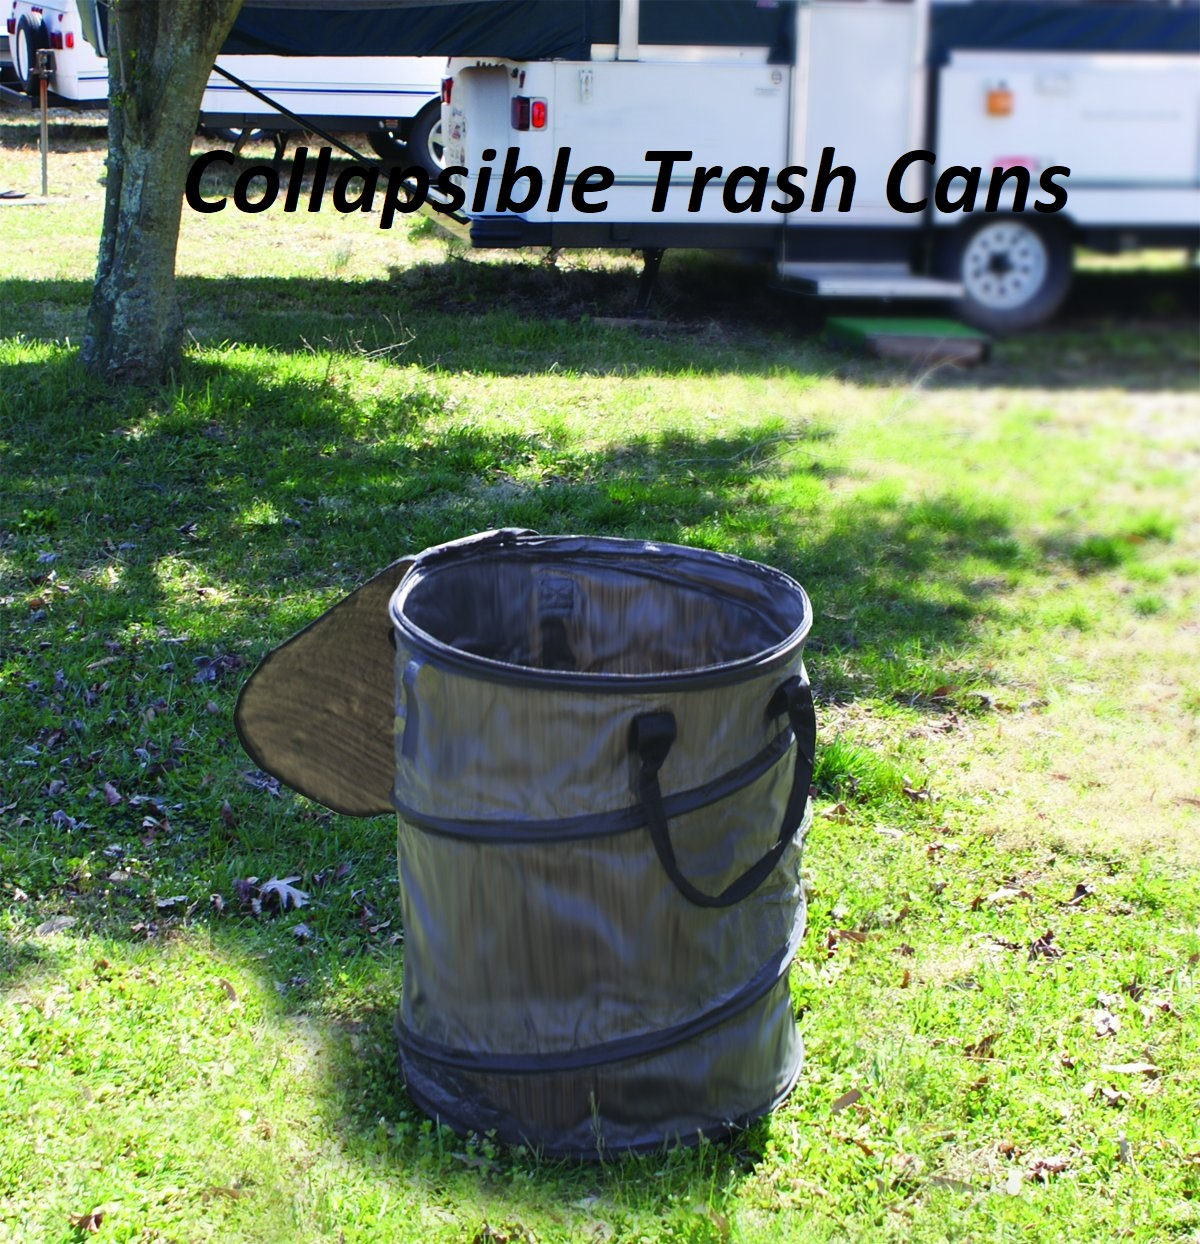 Collapsible Trash Cans